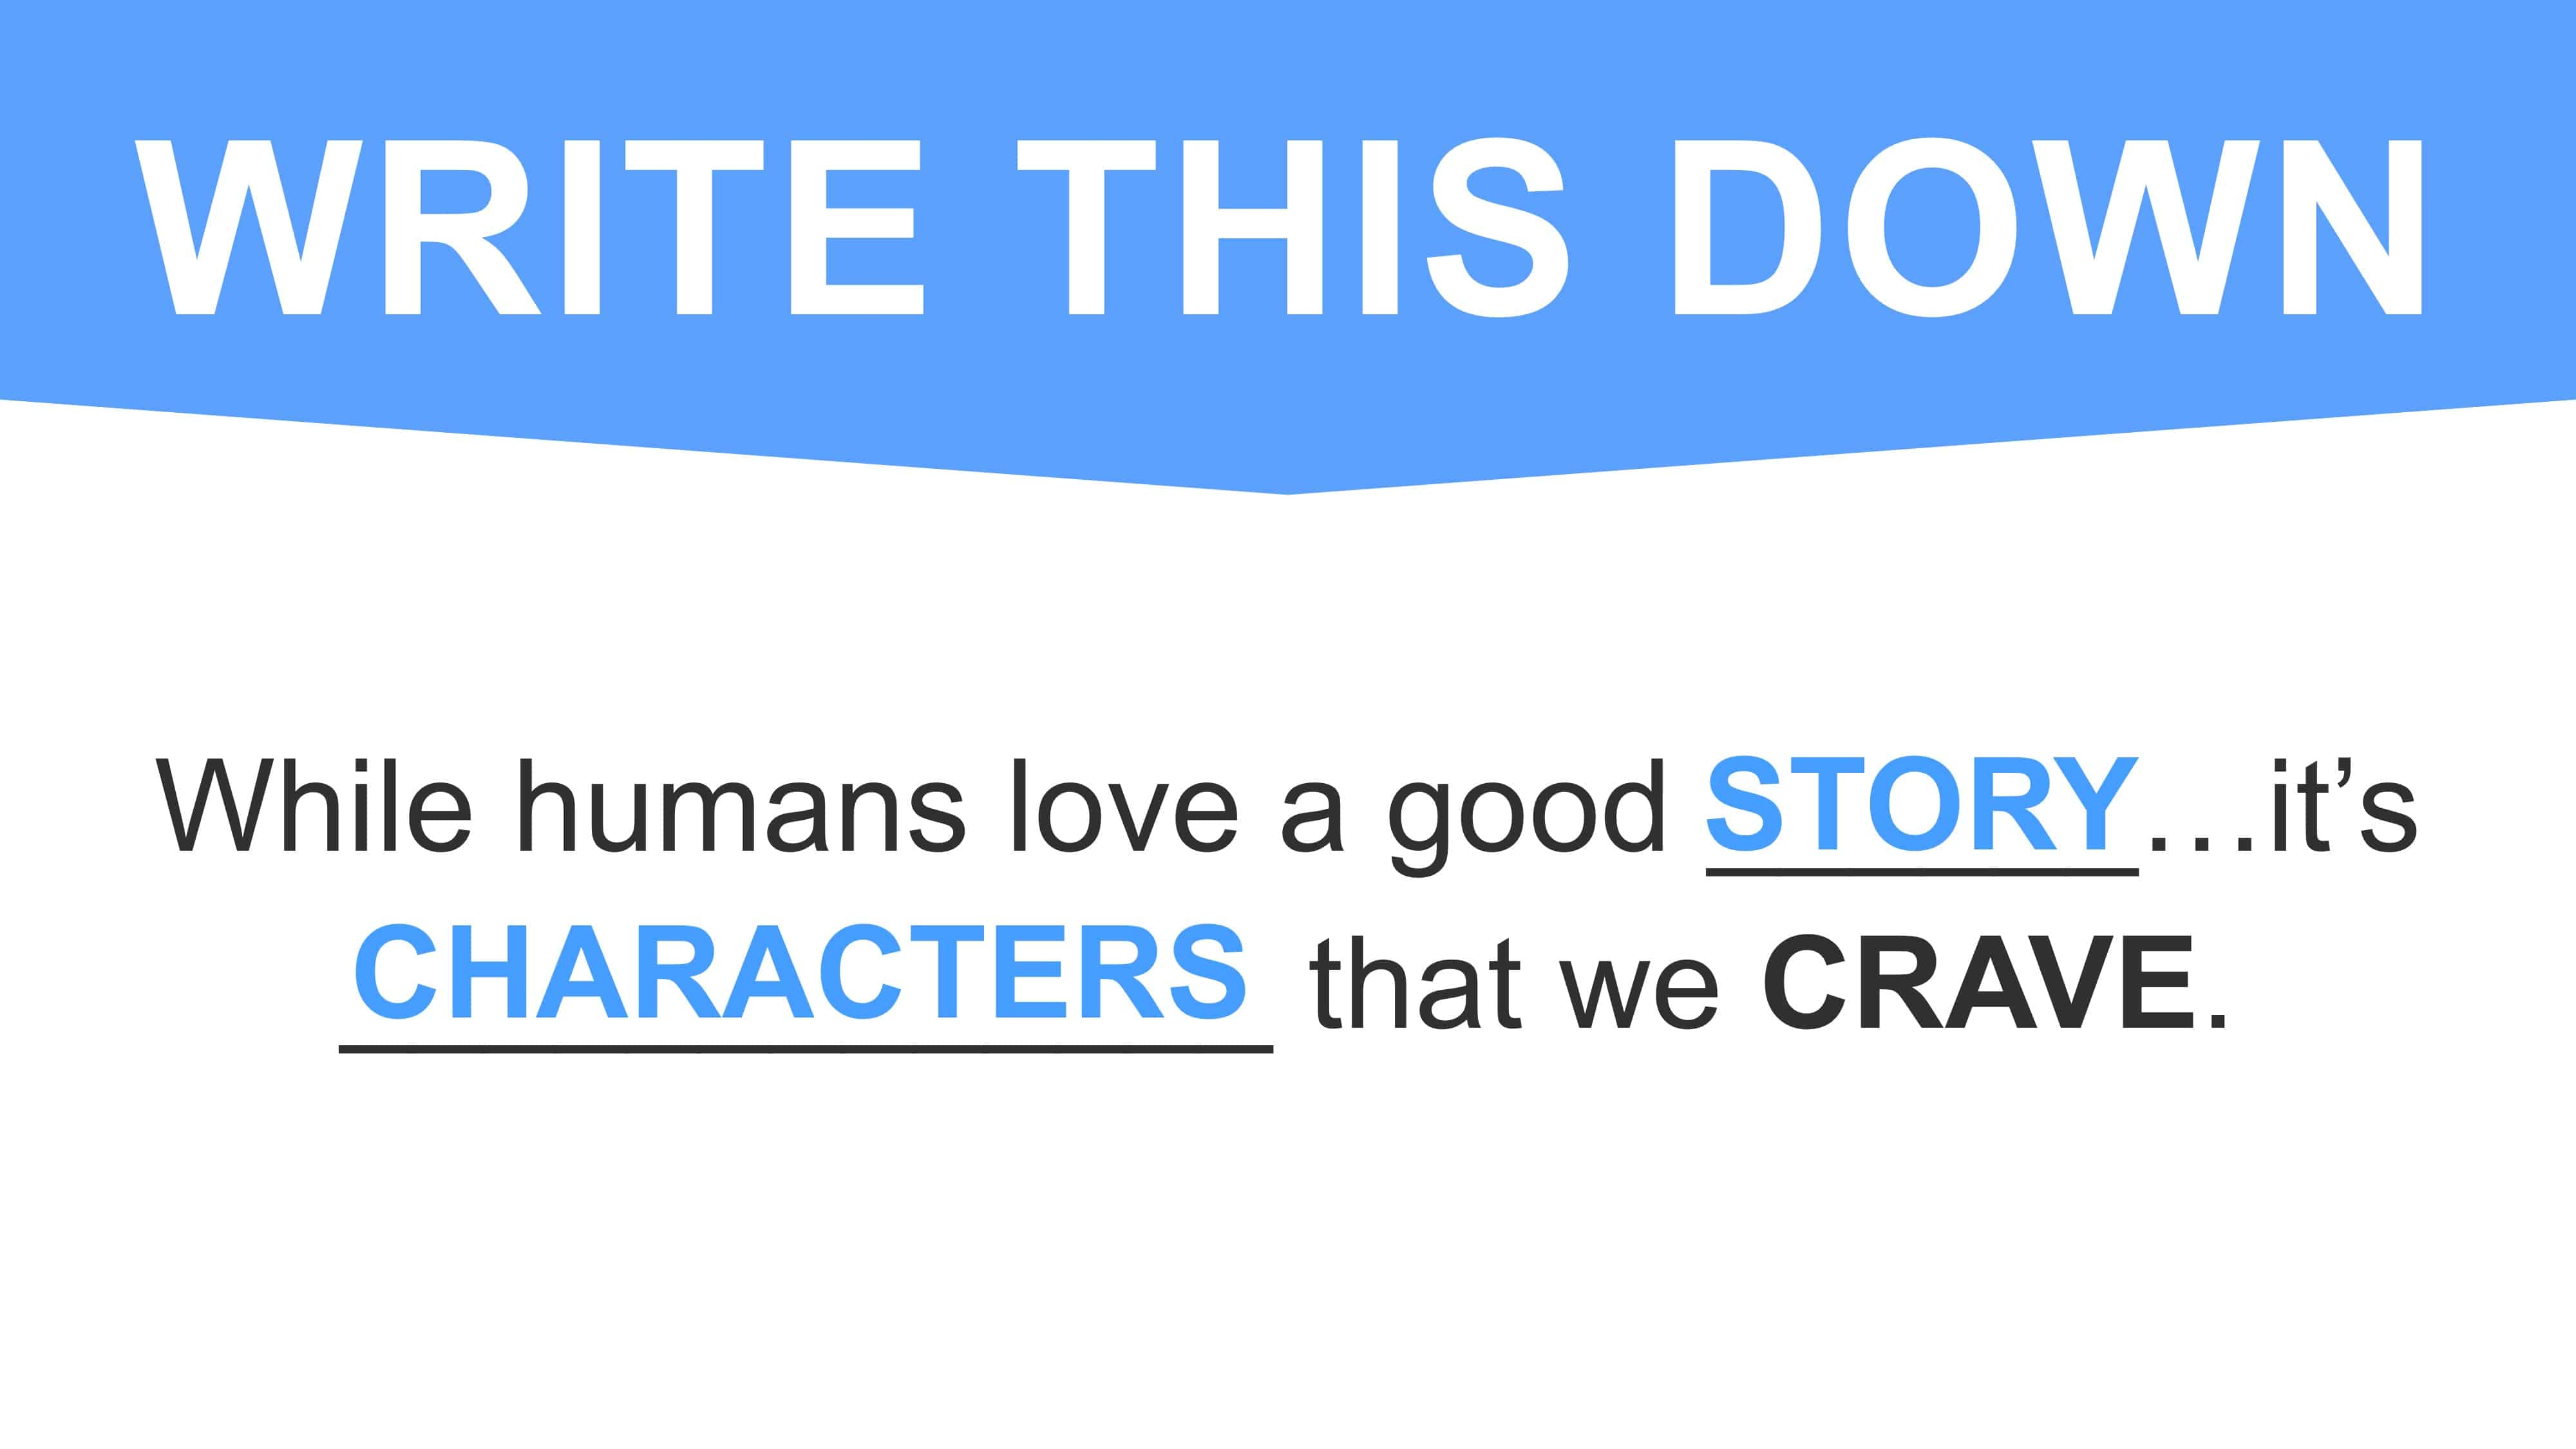 It's characters we crave